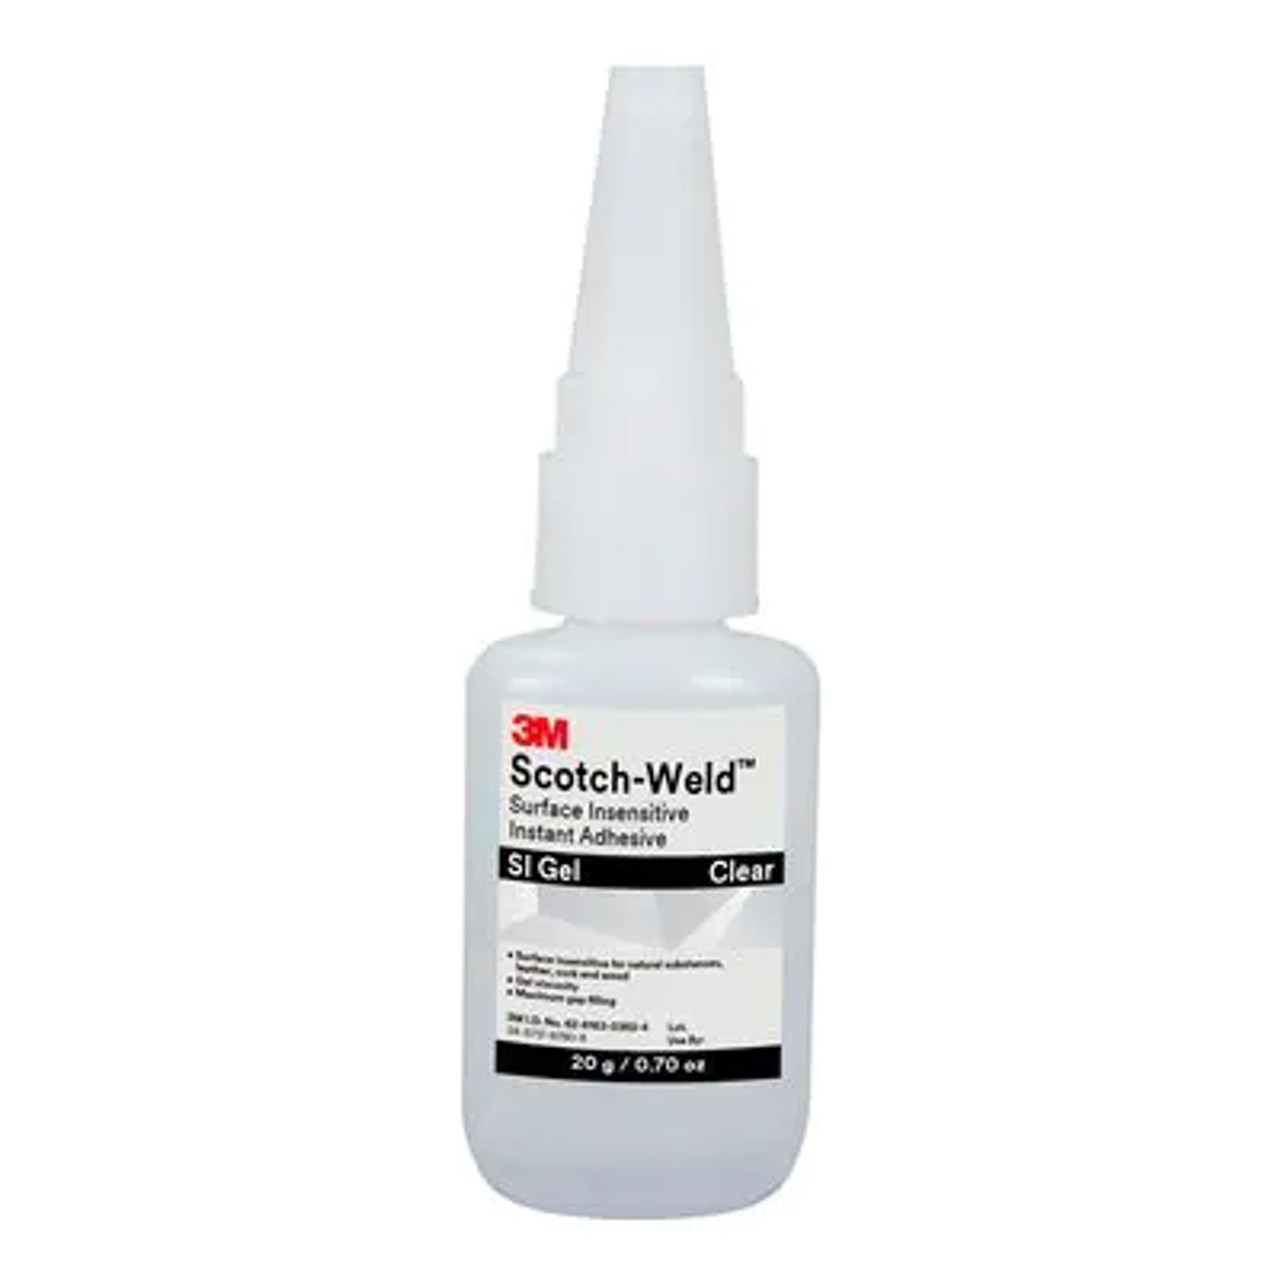 3M™ Scotch-Weld™ Surface Insensitive Instant Adhesive SI Gel, Clear, 20 Gram Tube